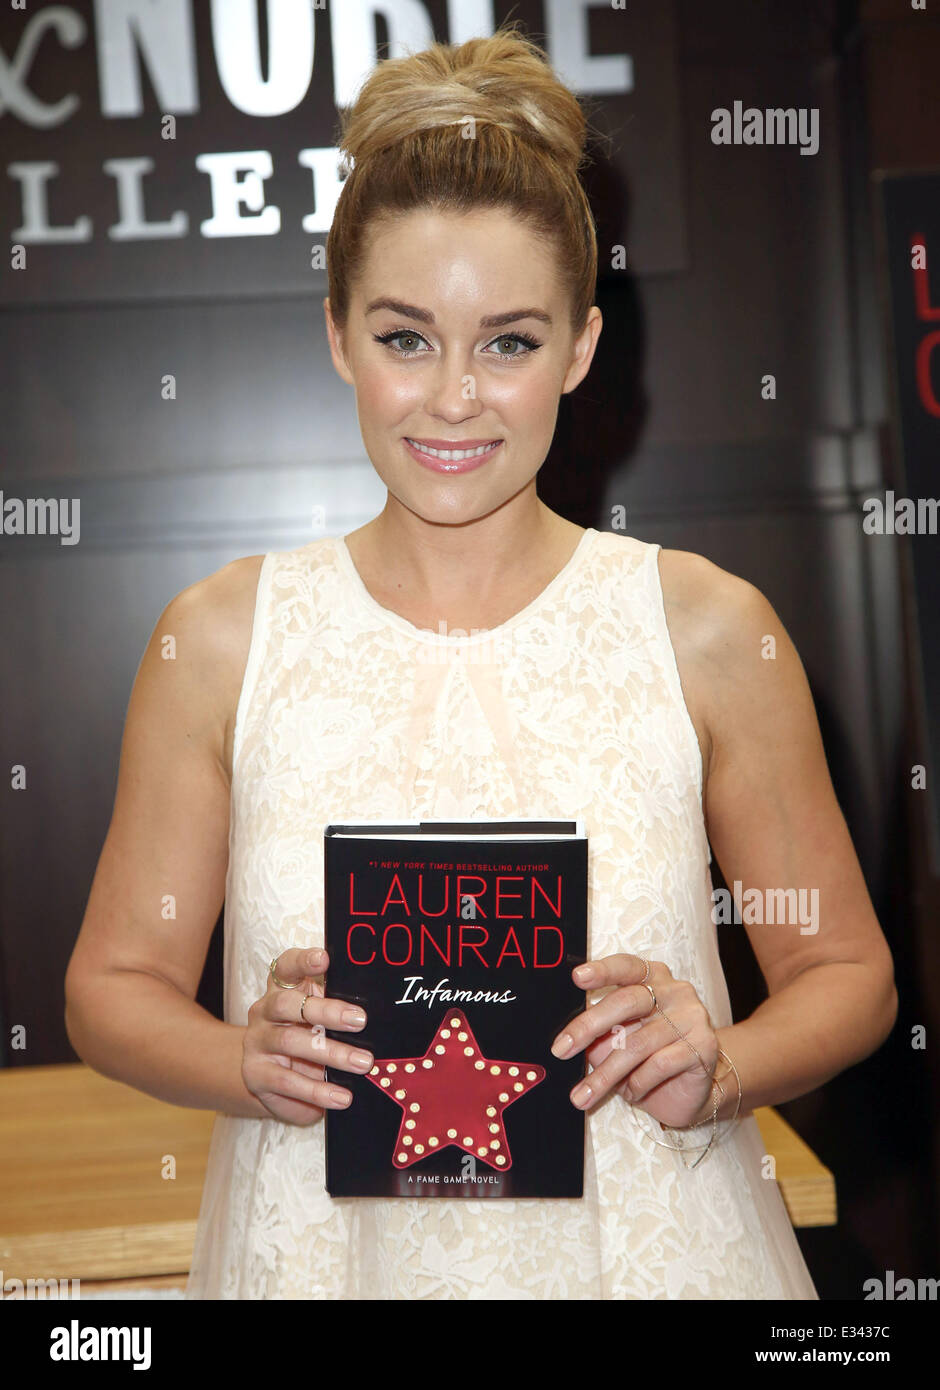 Lauren Conrad At Her Booksigning For Infamous At Barnes Noble At